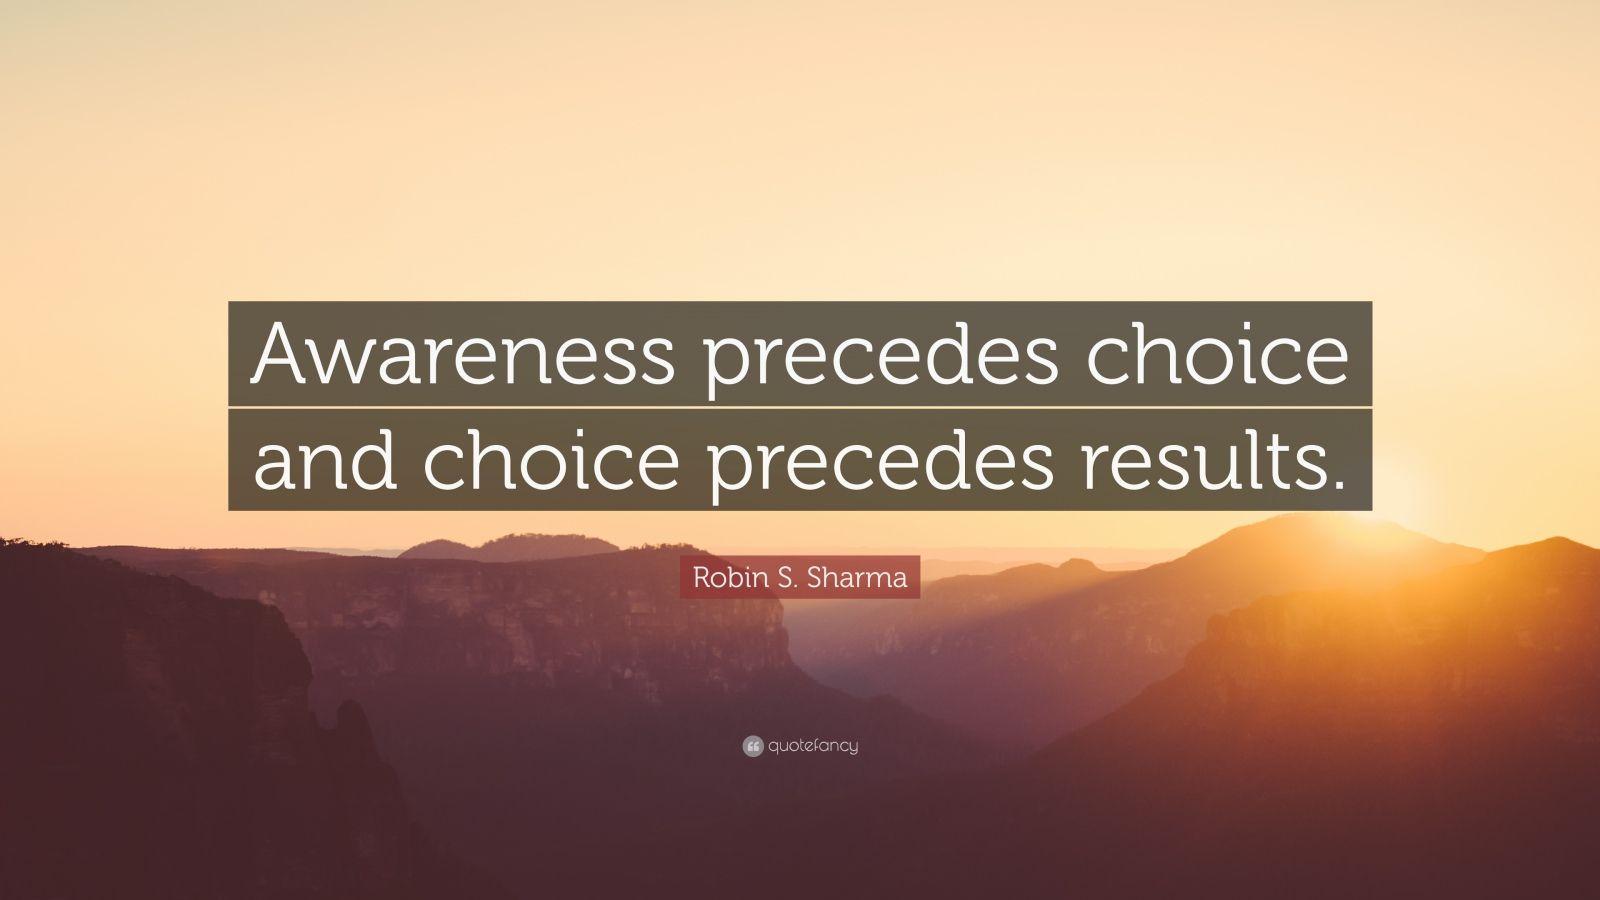 Robin S. Sharma Quotes (43 wallpapers) - Quotefancy